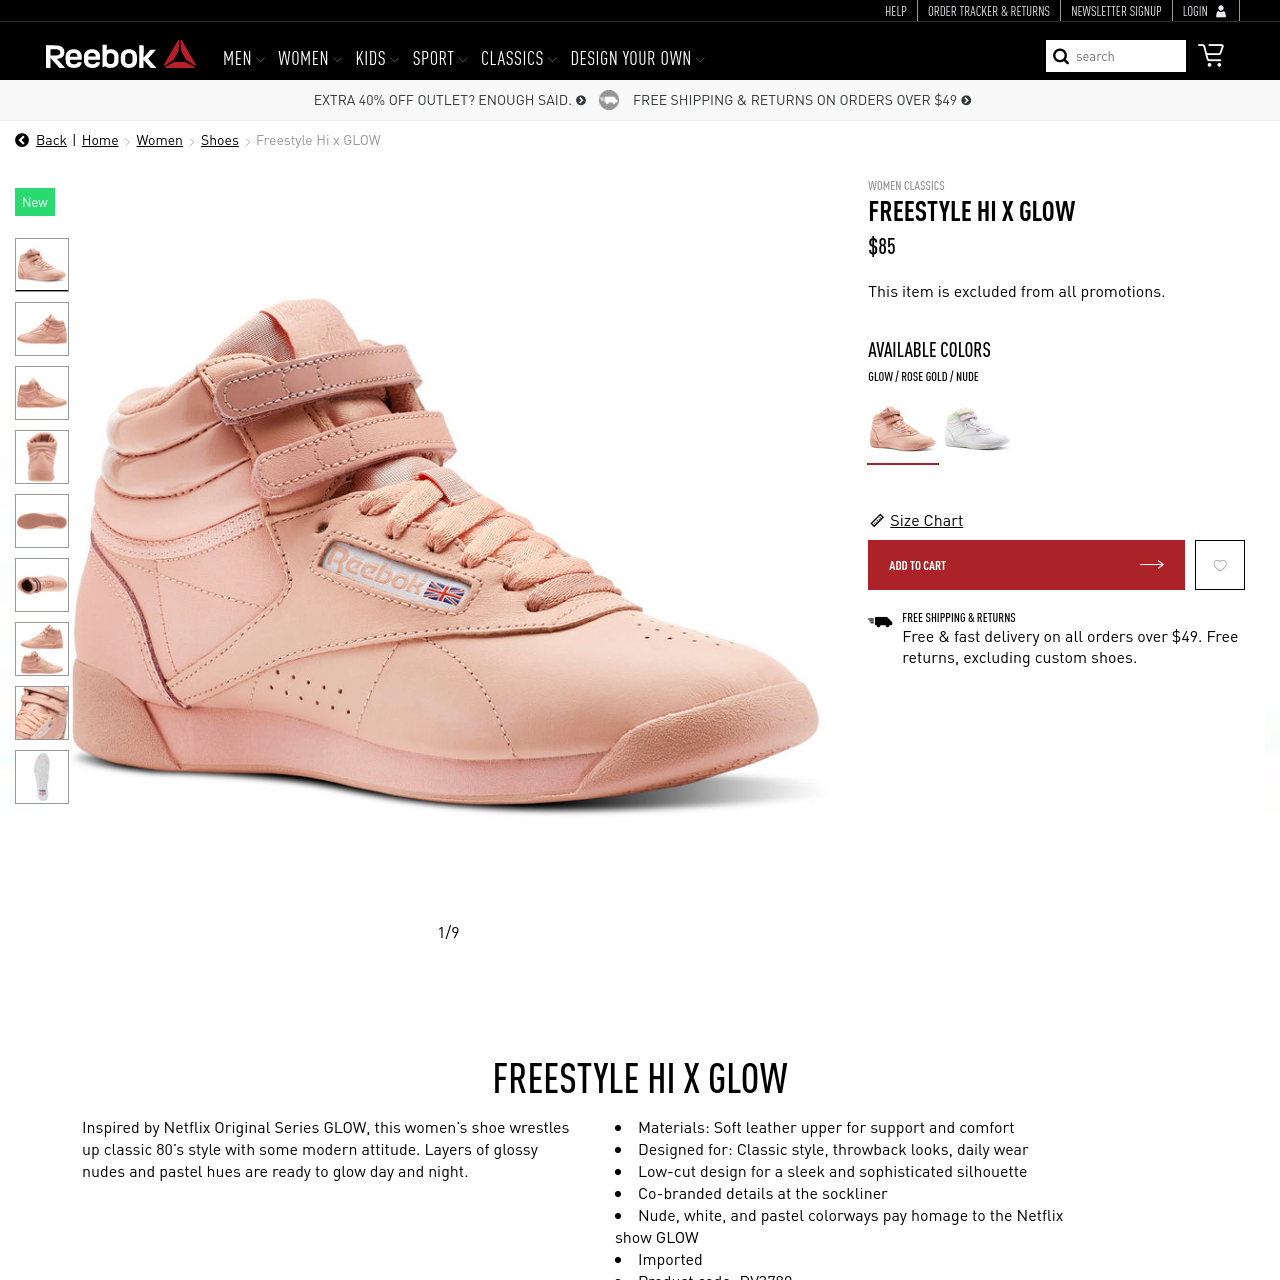 f6d591e2a91 Are.na   Reebok Freestyle Hi x GLOW - Glow